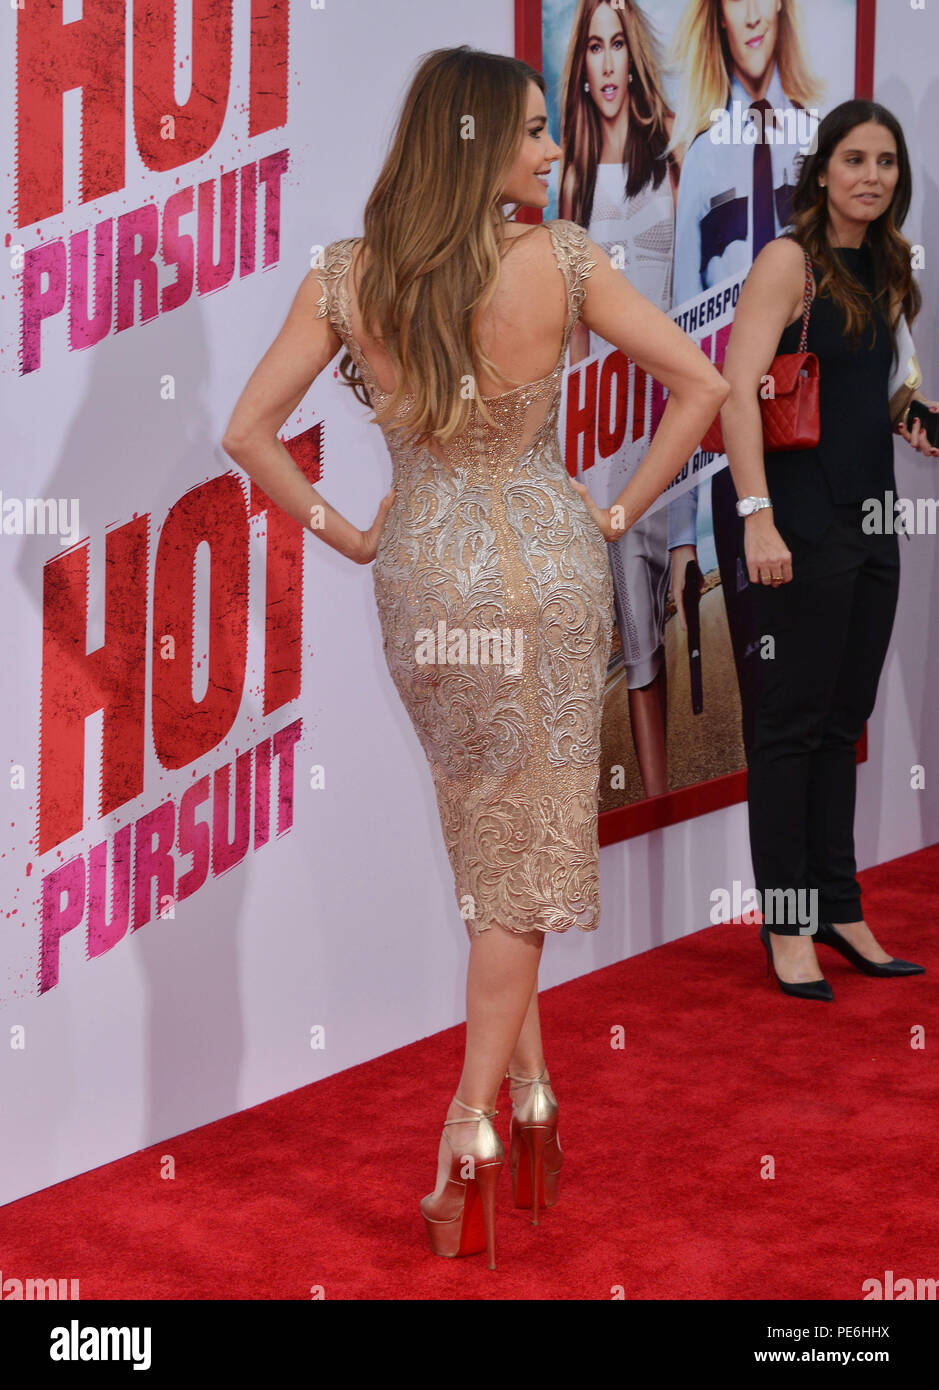 Sofia Vergara 030 At The Hot Pursuit Premiere At The Tcl Chinese Theatre In Los Angeles April 30 2015 Sofia Vergara 030 Event In Hollywood Life